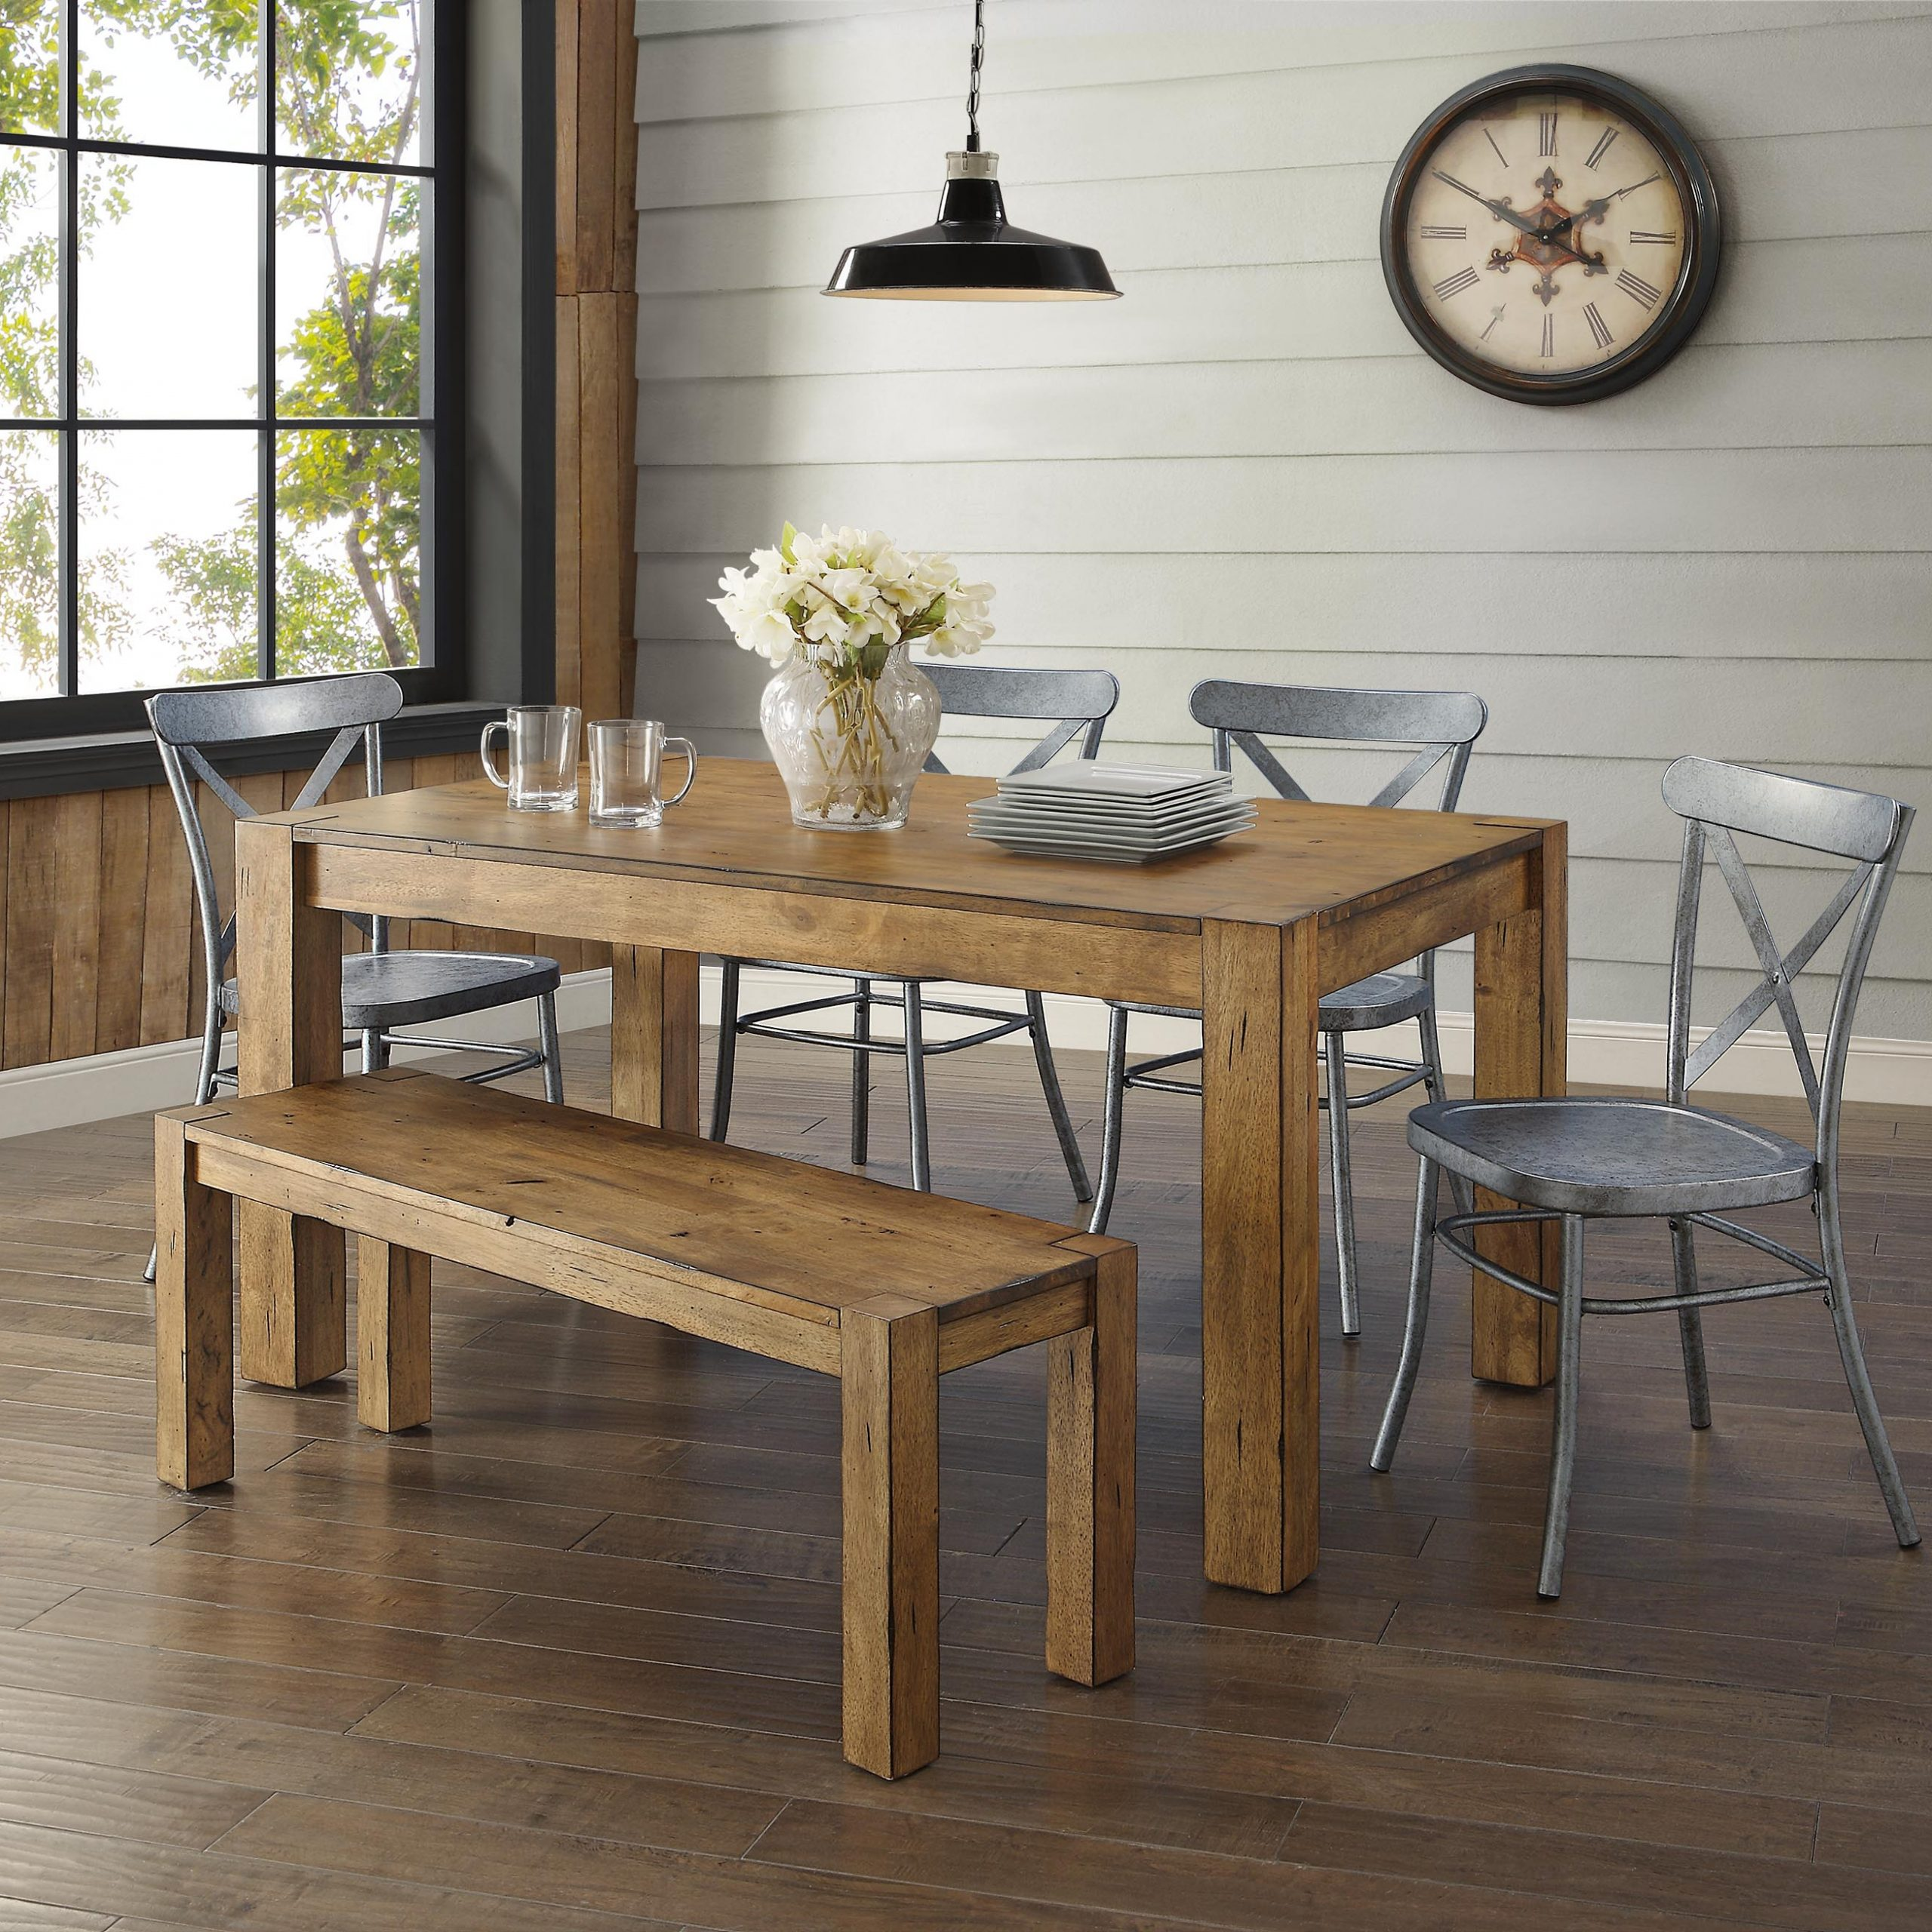 2019 Small Dining Tables With Rustic Pine Ash Brown Finish With Regard To Better Homes & Gardens Bryant Dining Table, Rustic – Walmart (View 14 of 25)